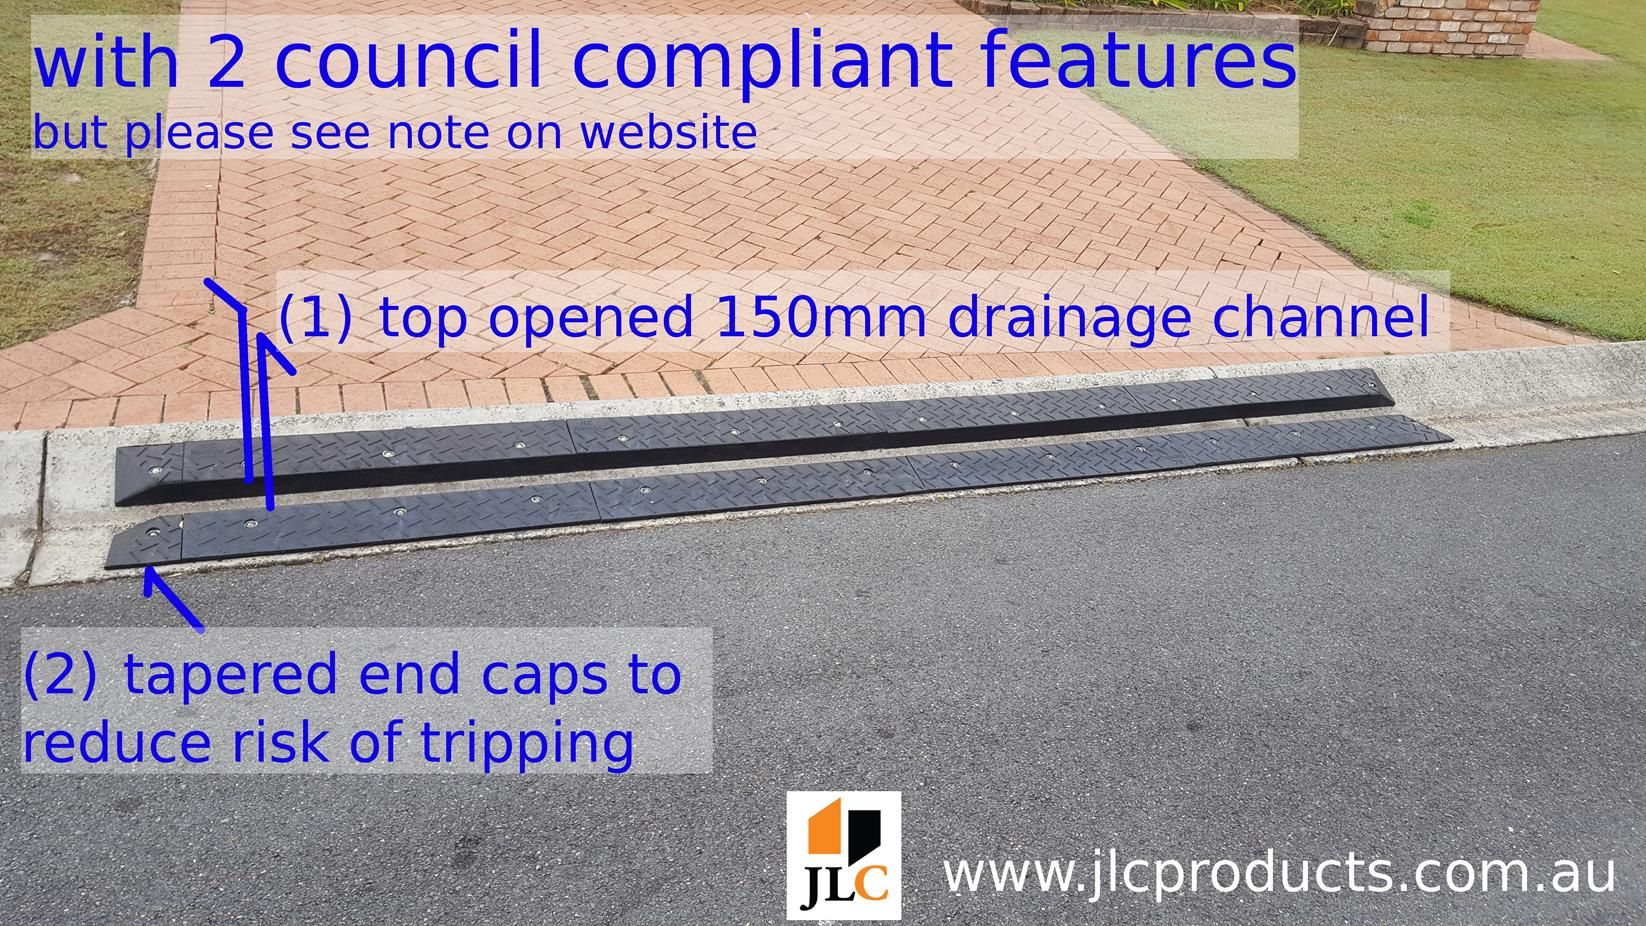 Driveway Kerb Or Curb Ramps Designed For Layback Kerbs Made From Recycled Rubber Goto Www Jlcproducts Com Au For A Driveway Ramp Rubber Ramp Curb Ramp